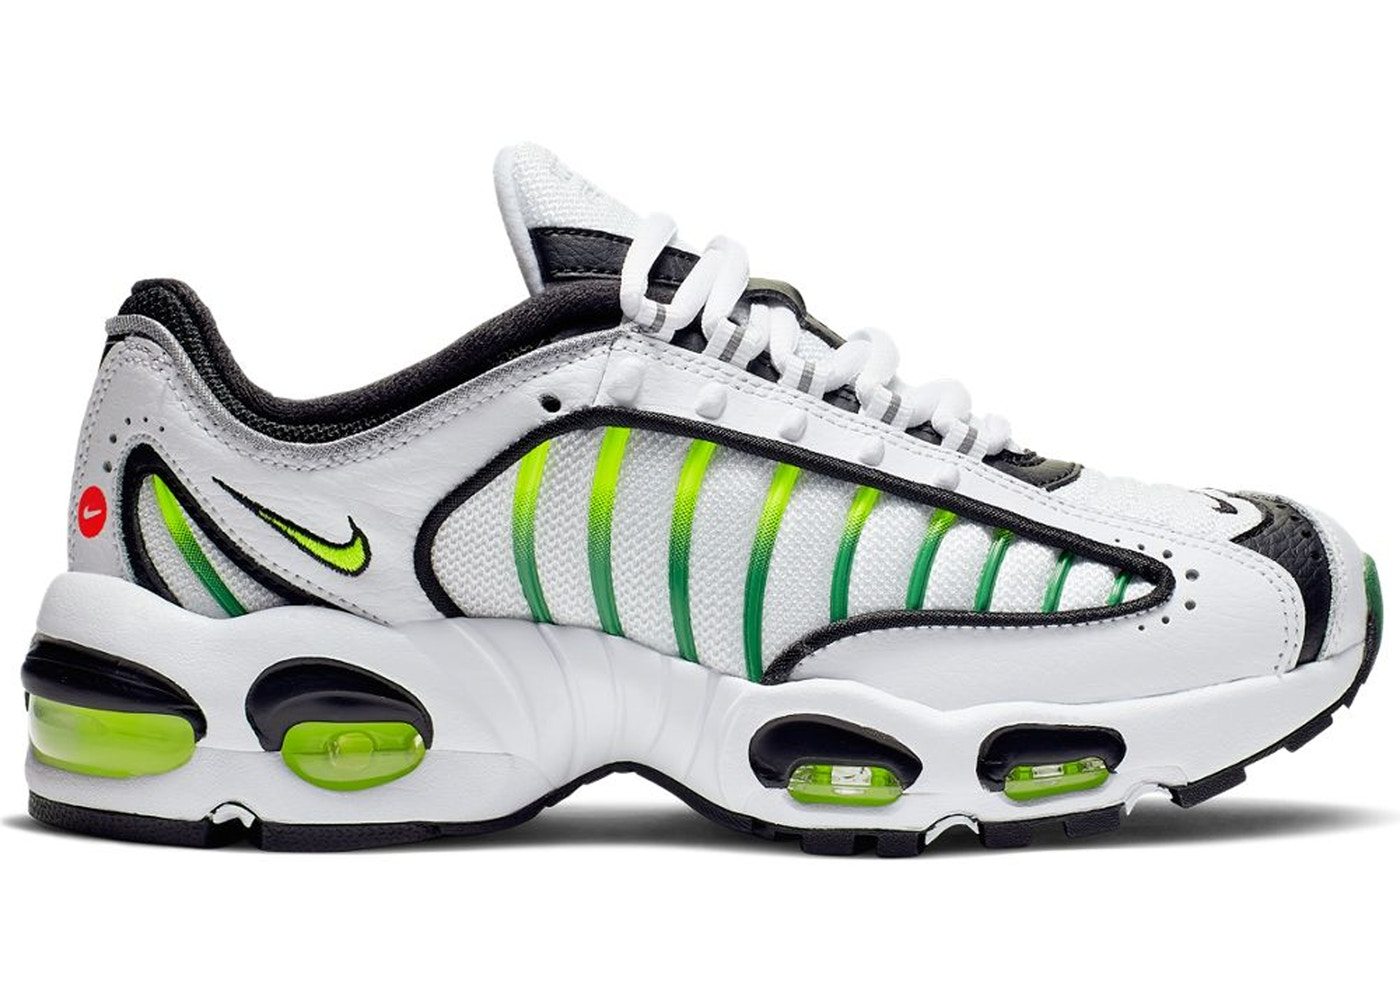 f42aa98c Air Max Tailwind 4 White Volt Black (GS) - BQ9810-100